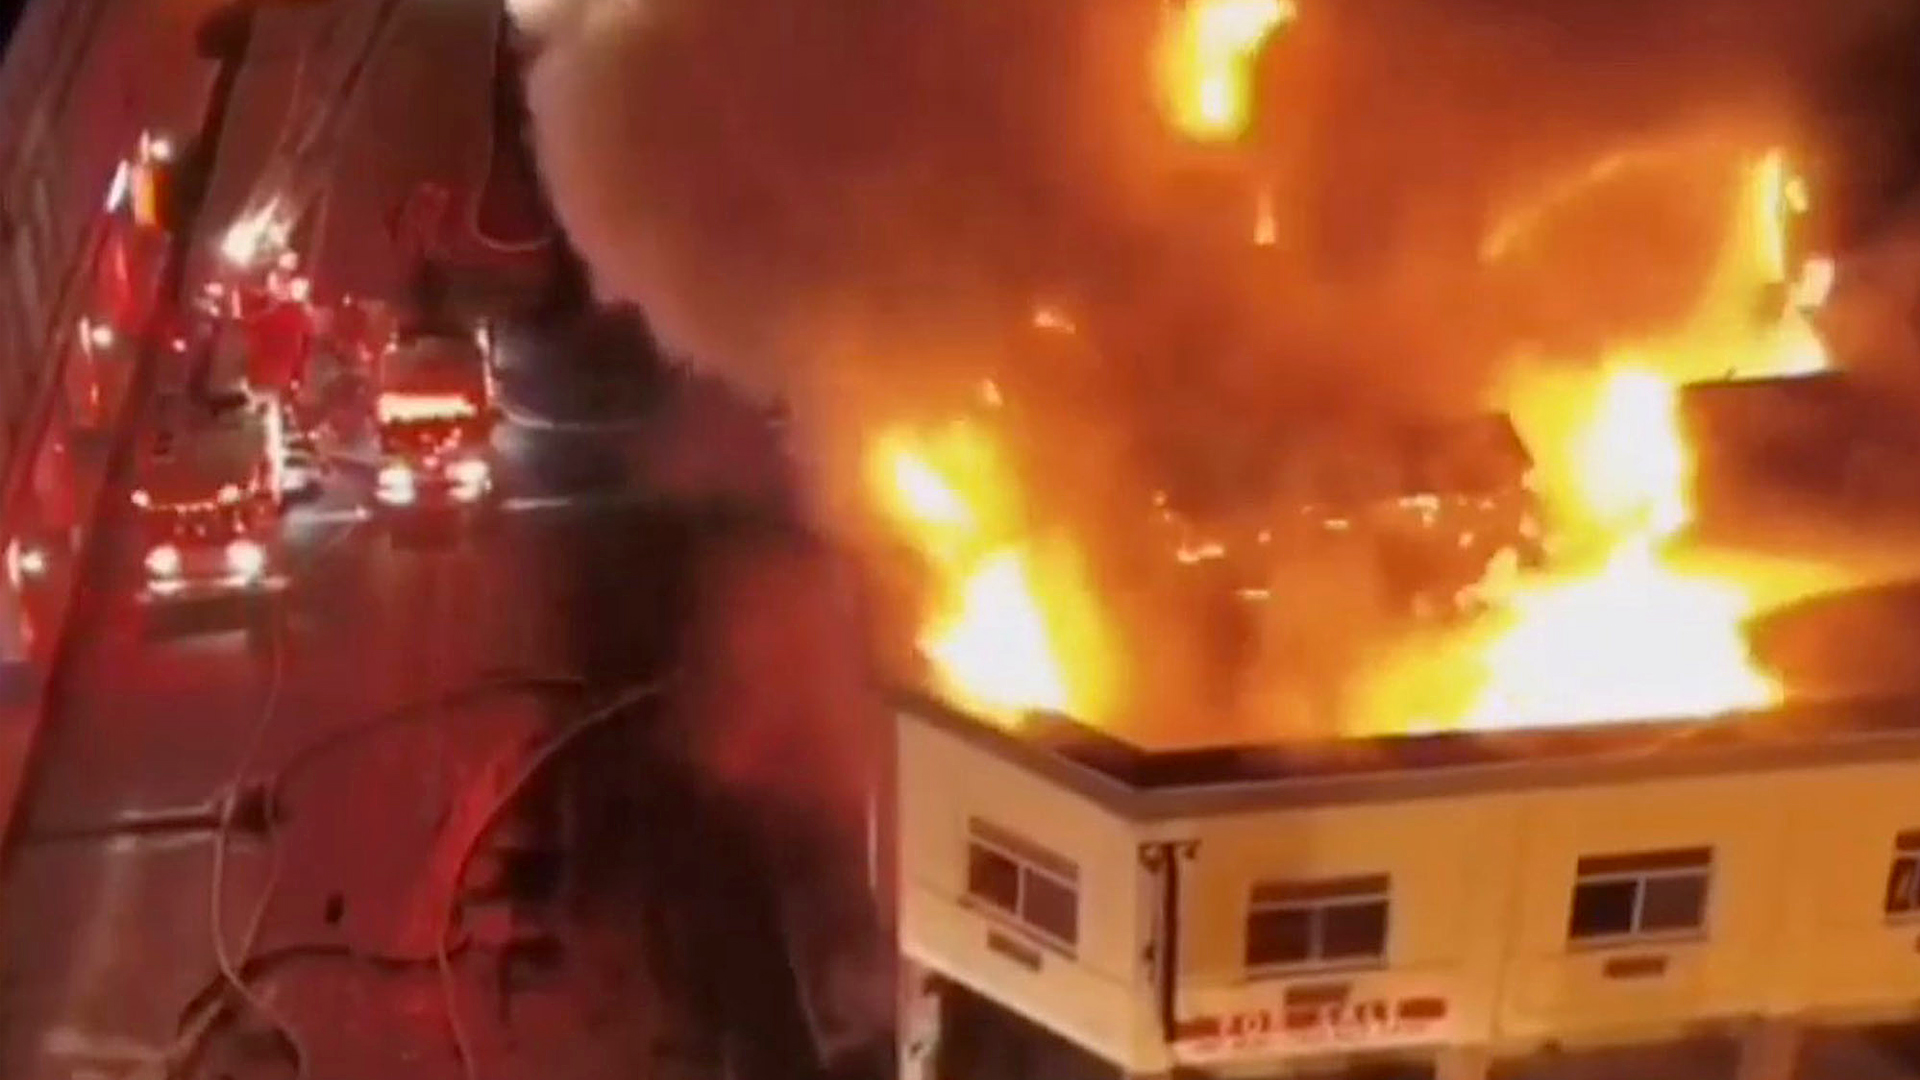 VIDEO: Massive Fire Guts Historic Mayan Hotel In El Centro